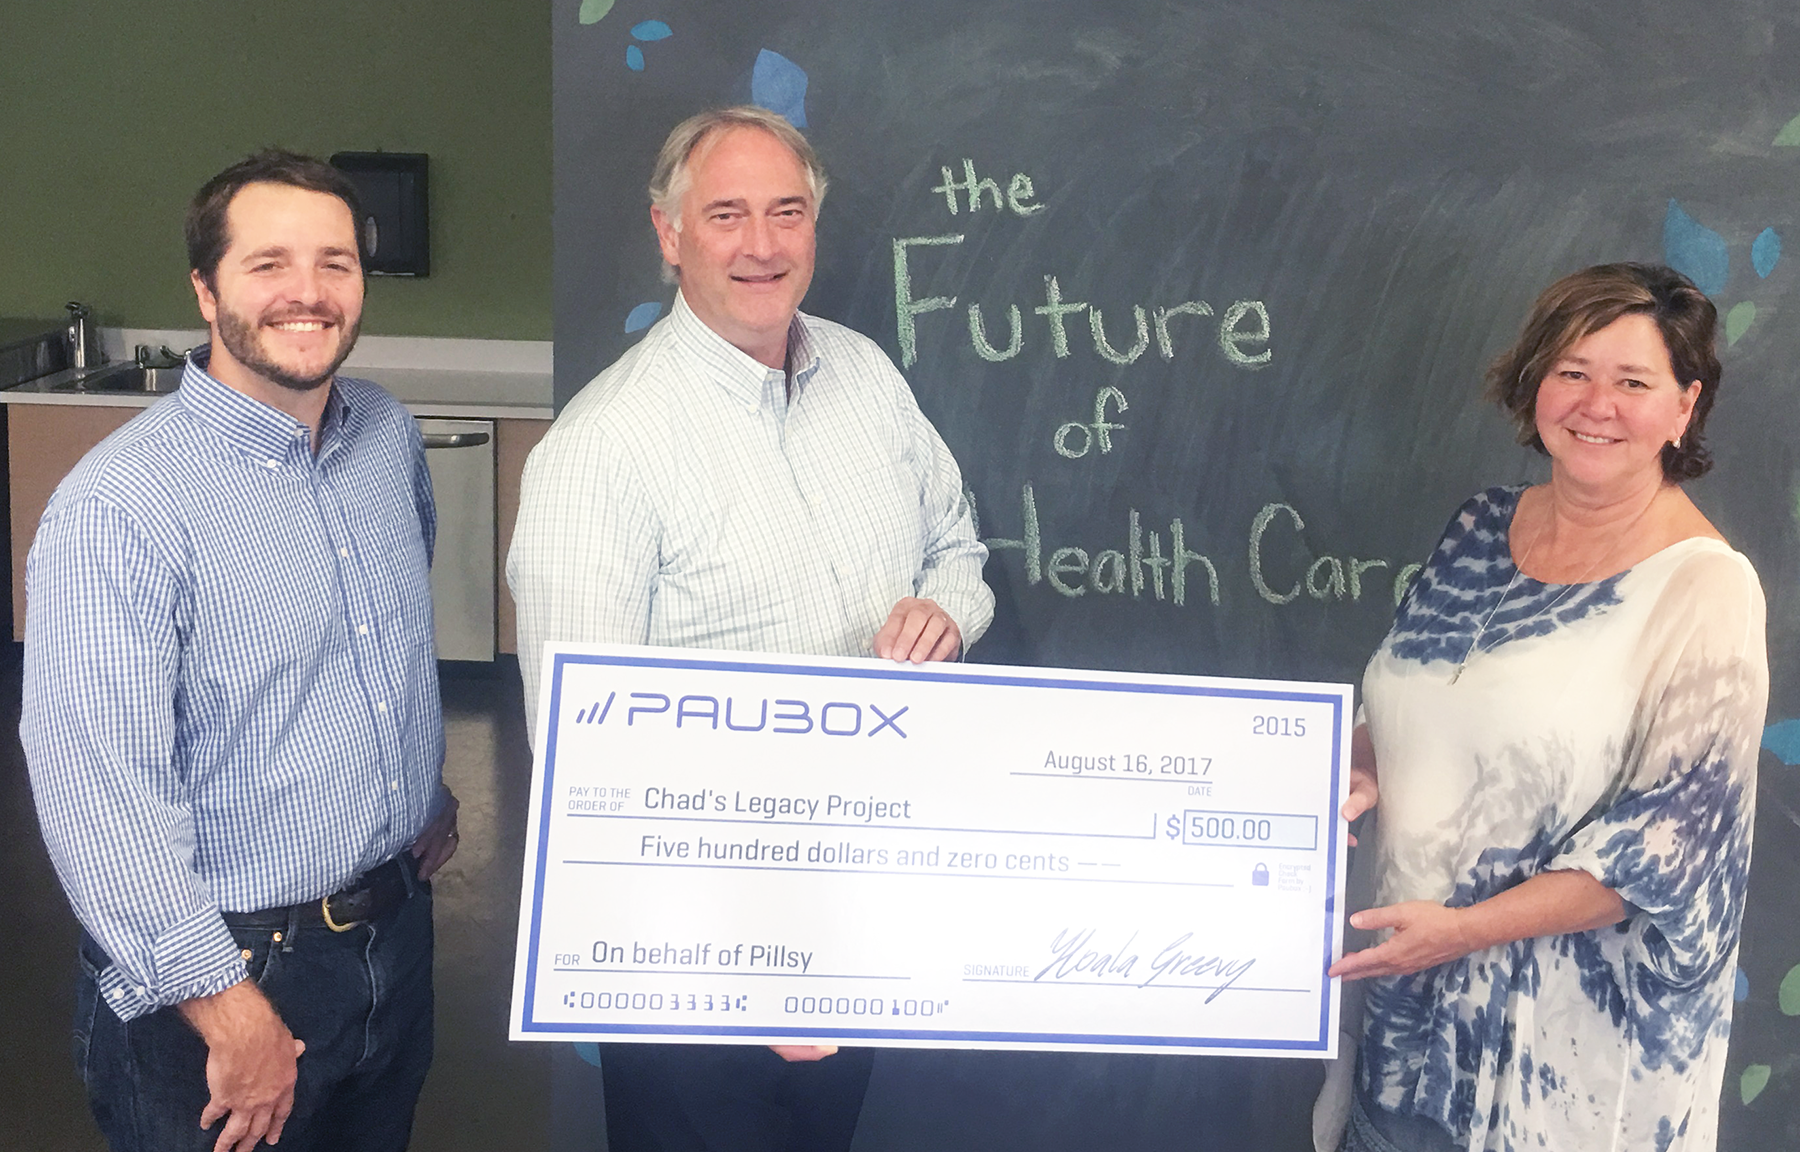 paubox donation chad's legacy project pillsy level therapy 500 startups